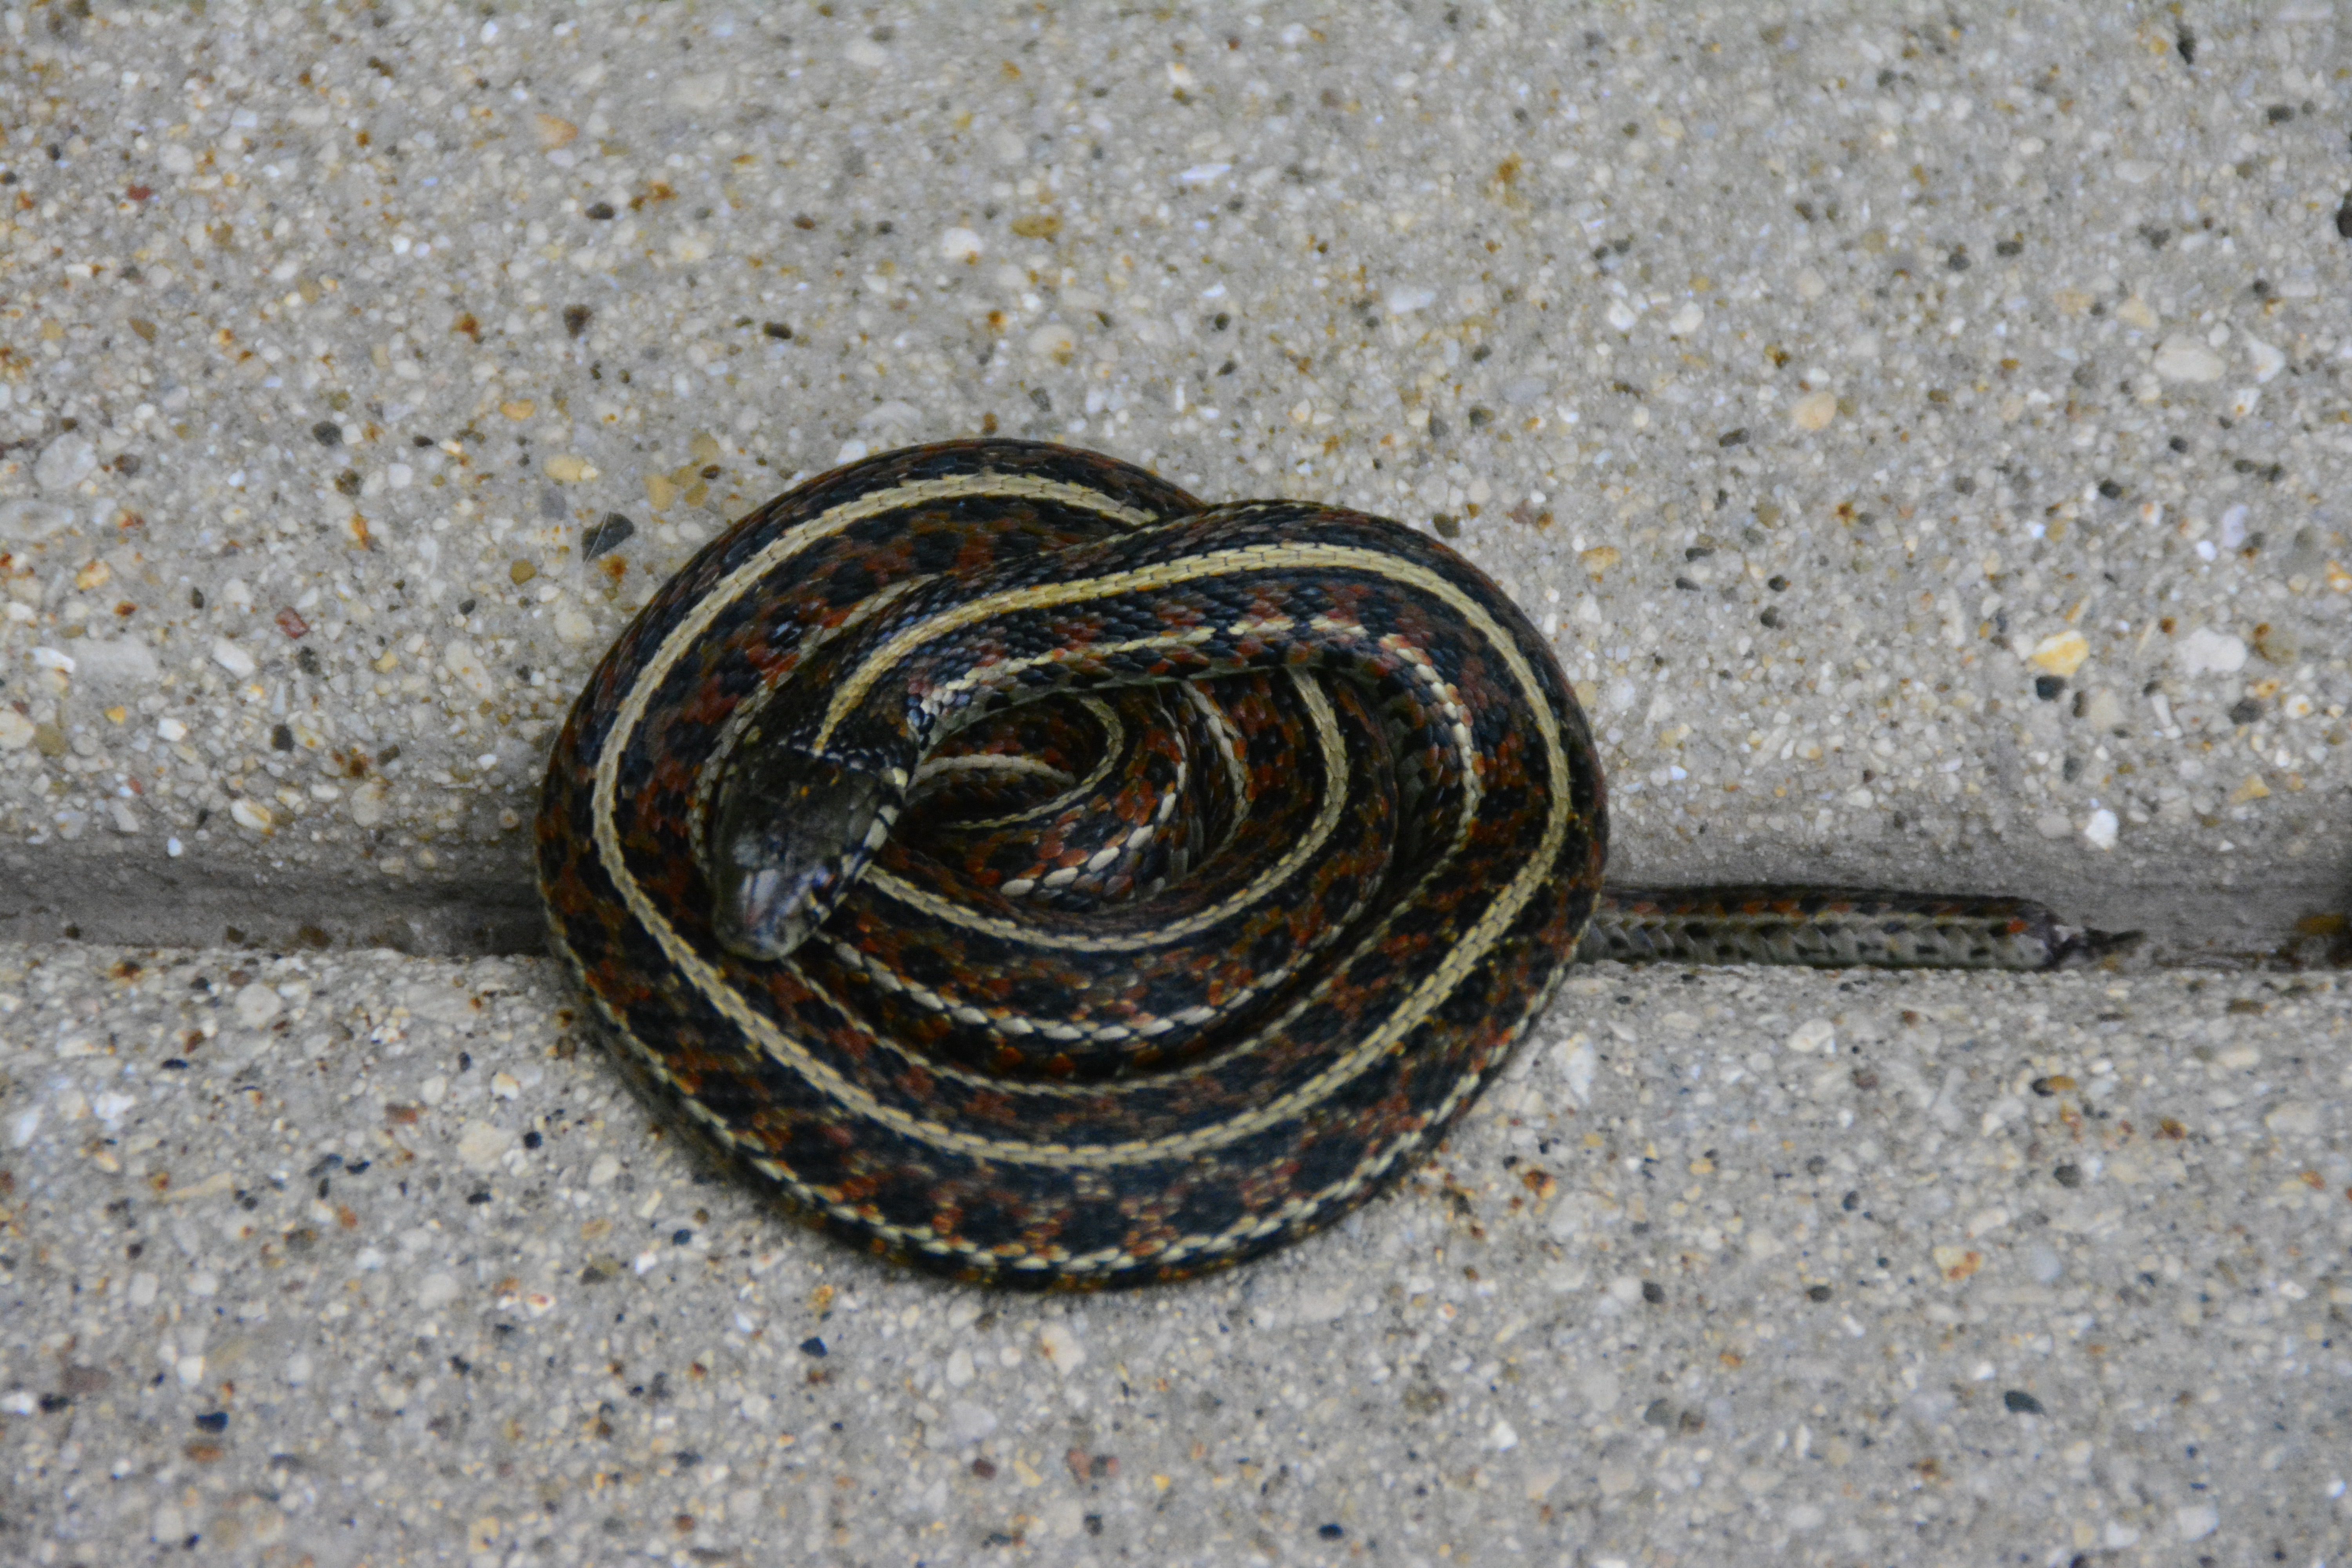 A common garter snake warms itself on the sidewalk just outside of ICB's west entrance. Photo: Leslie Peters, TD